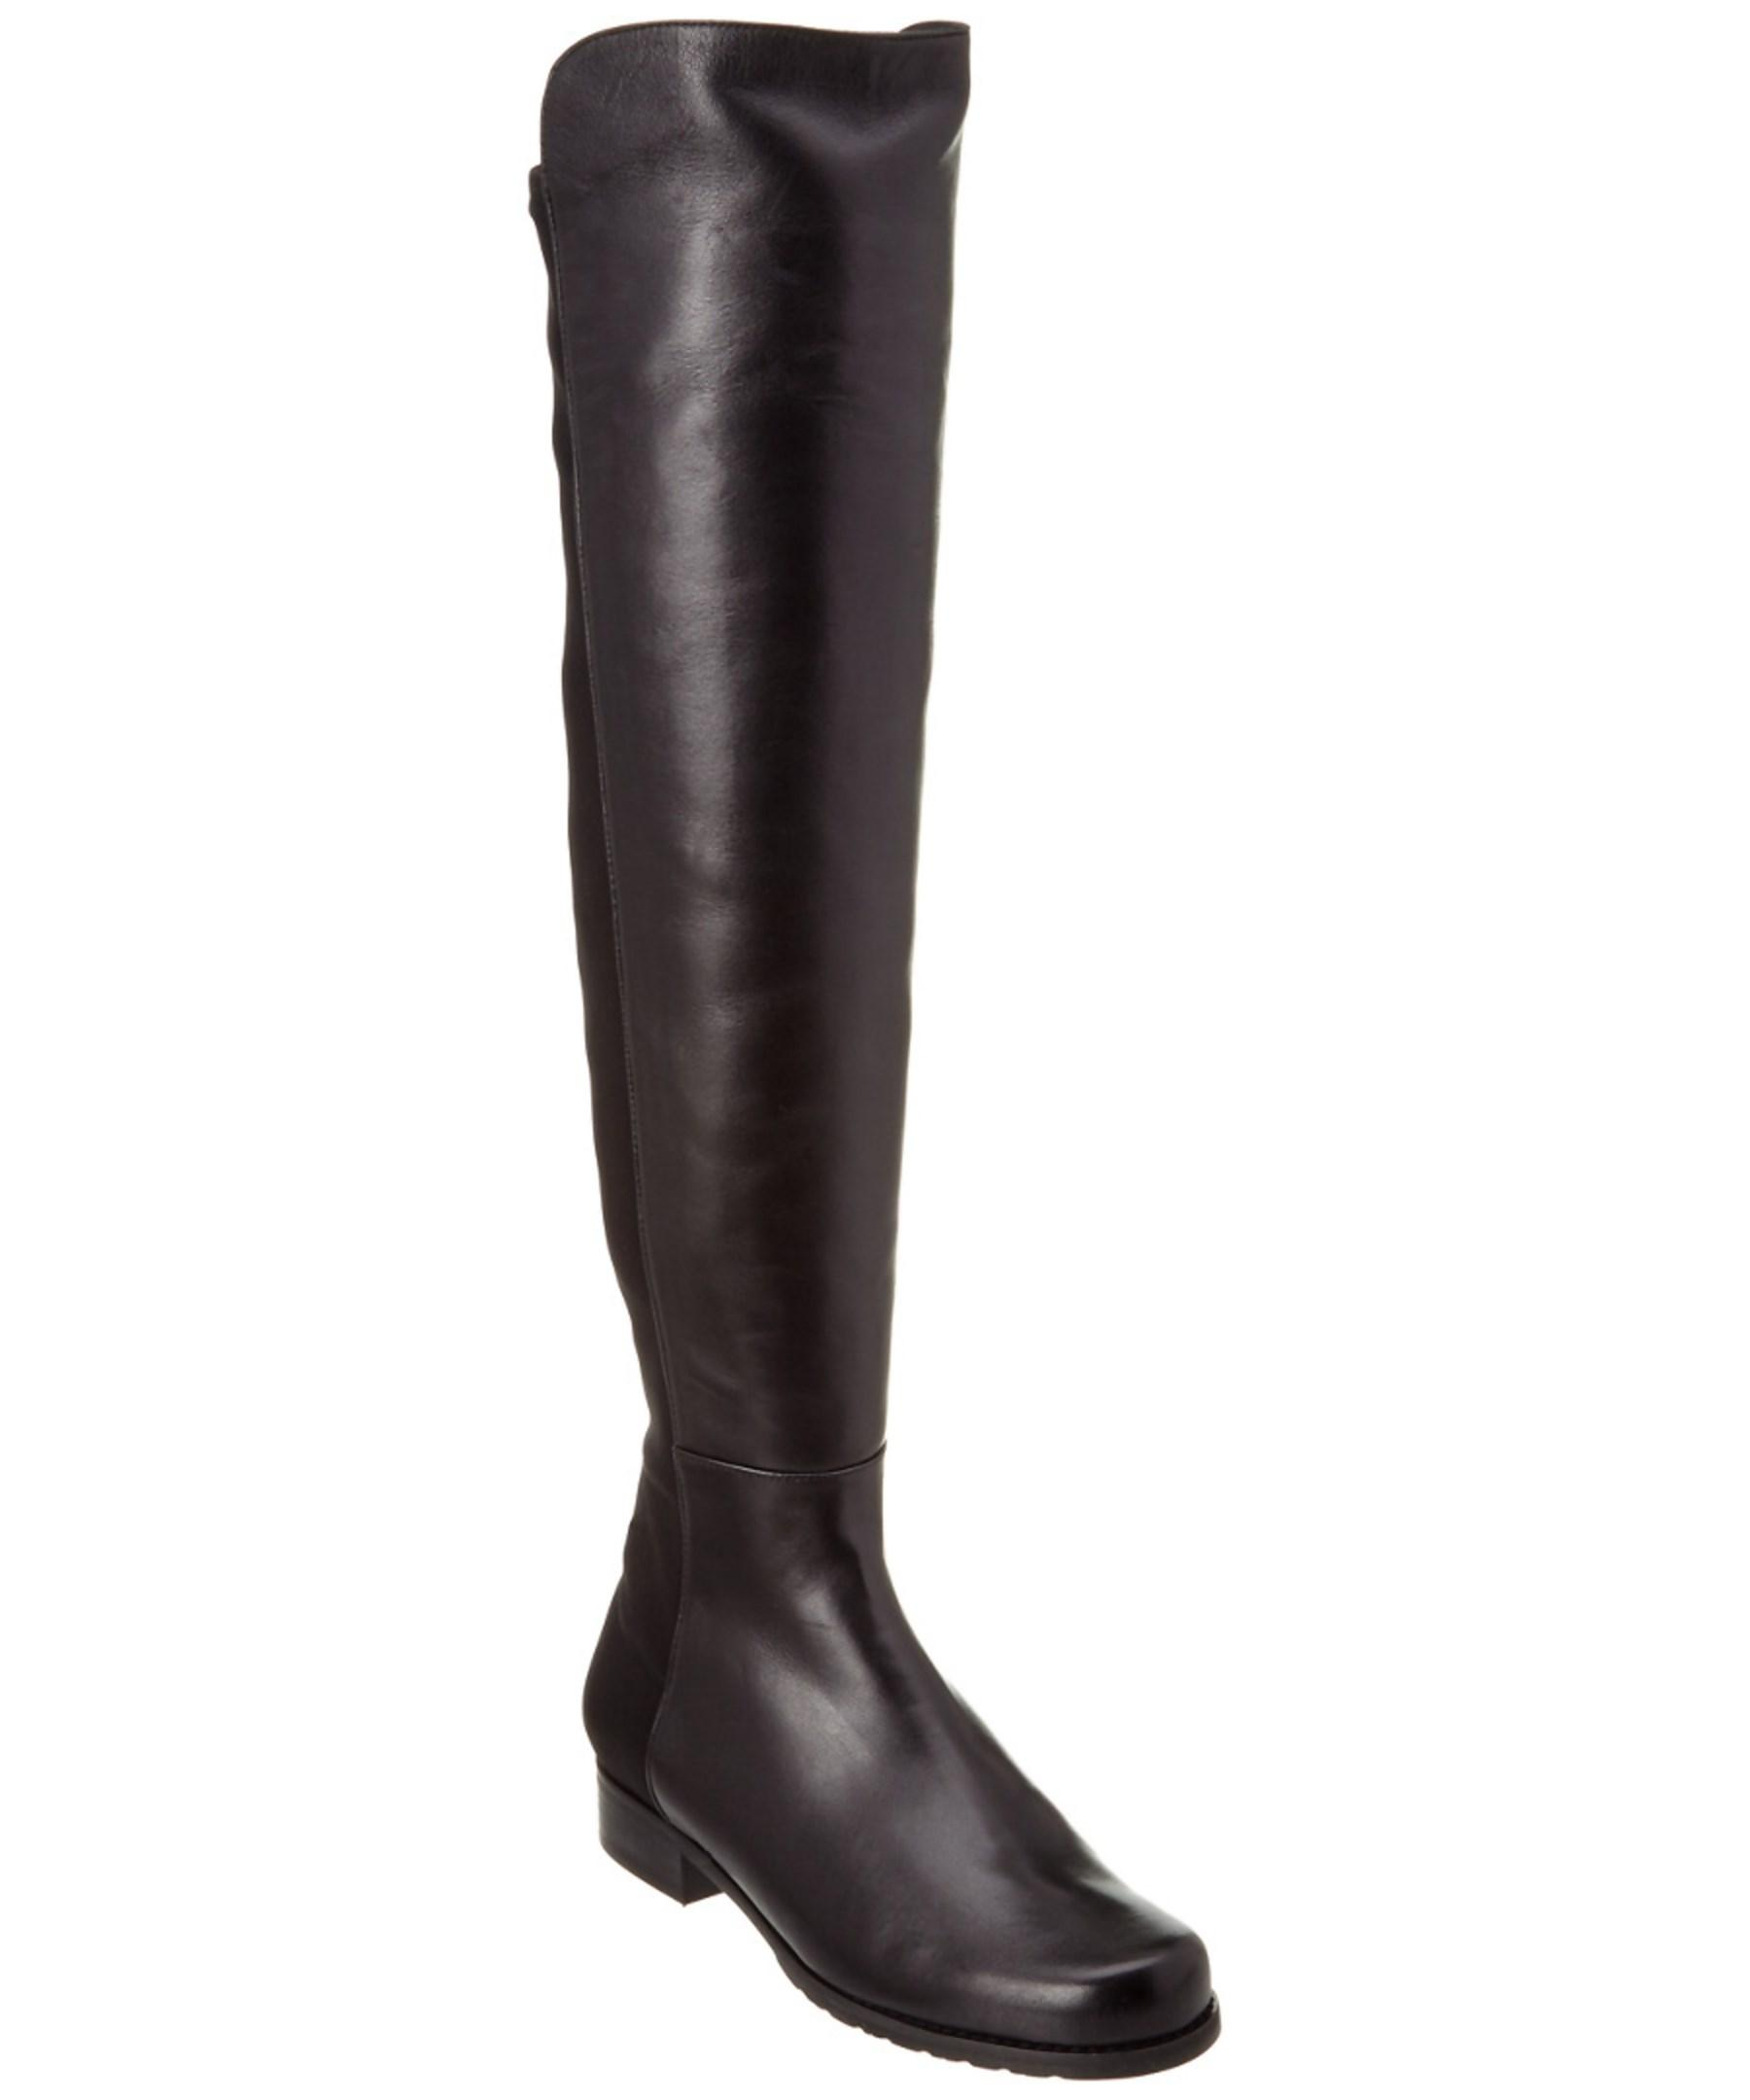 Free shipping and returns on women's boots at interactivebest.ml, including riding, knee-high boots, waterproof, weatherproof and rain boots from the best brands - UGG, Timberland, Hunter and more.